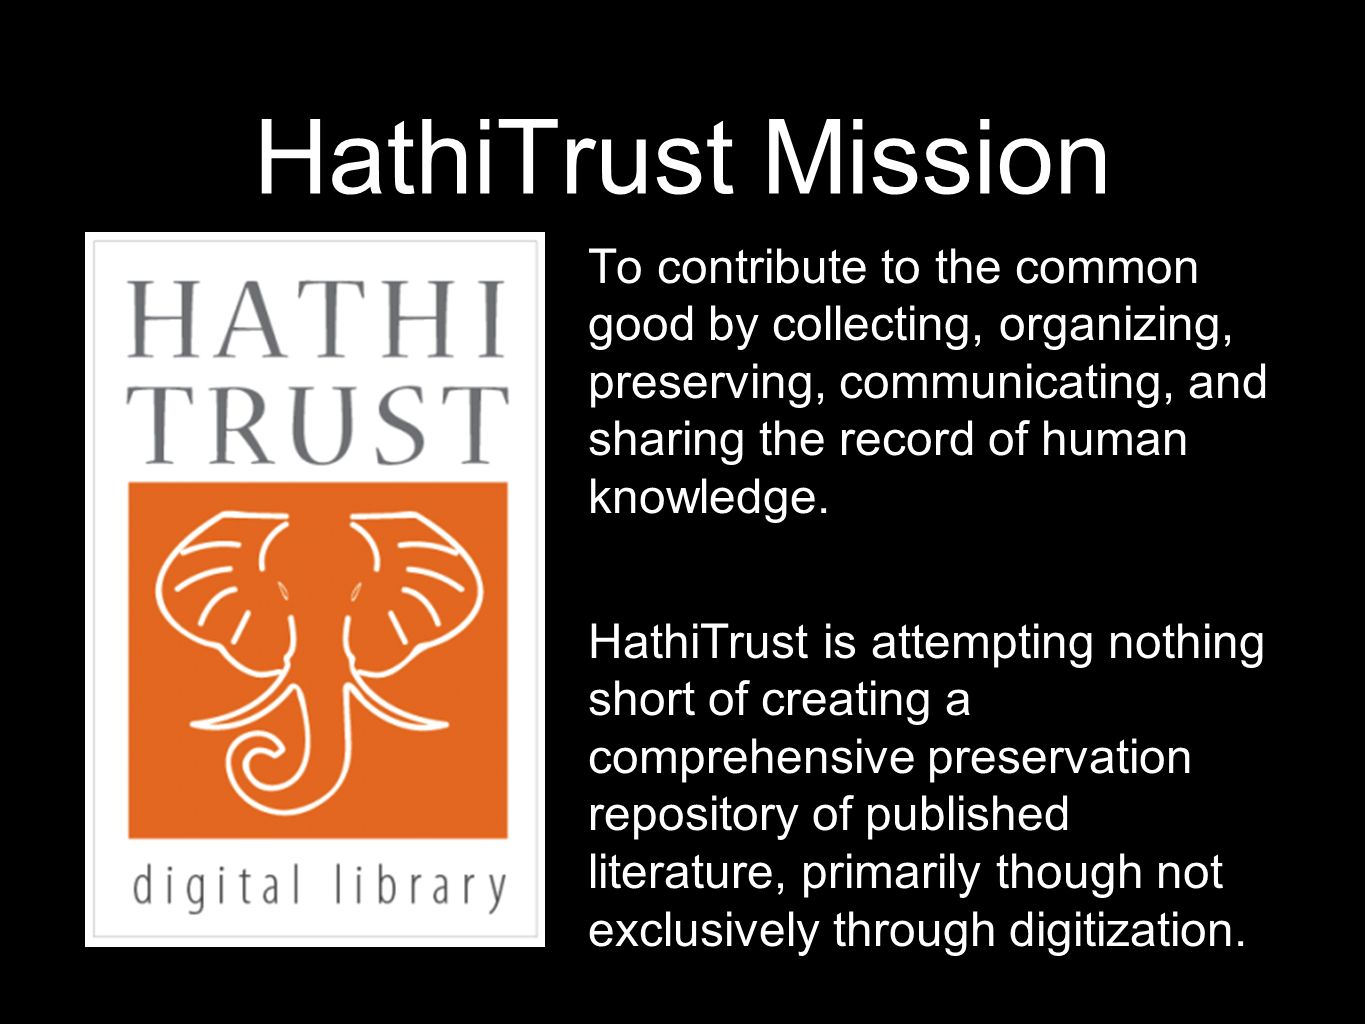 HathiTrust Mission To contribute to the common good by collecting, organizing, preserving, communicating, and sharing the record of human knowledge. H